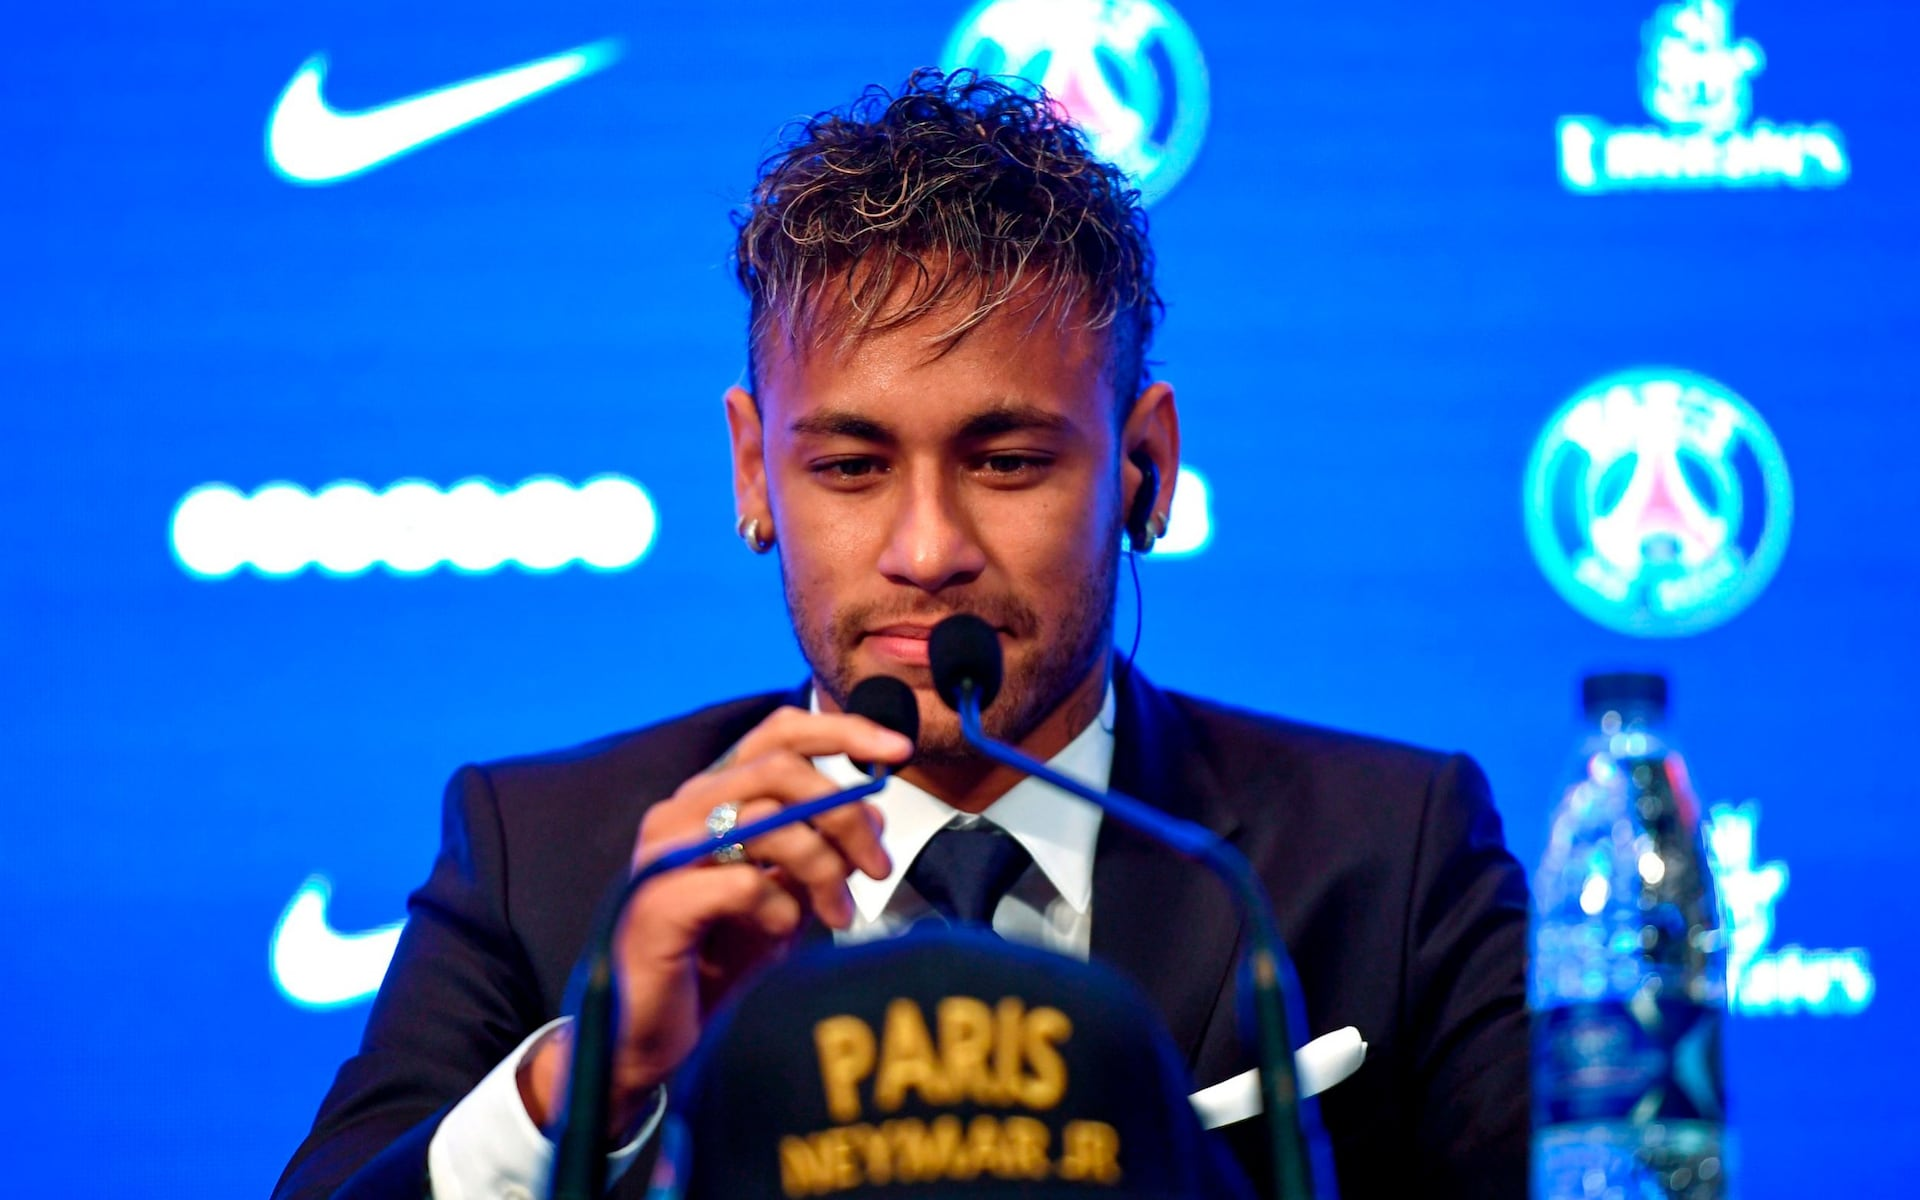 Paris Saint-Germain announce signing of Neymar from Barcelona